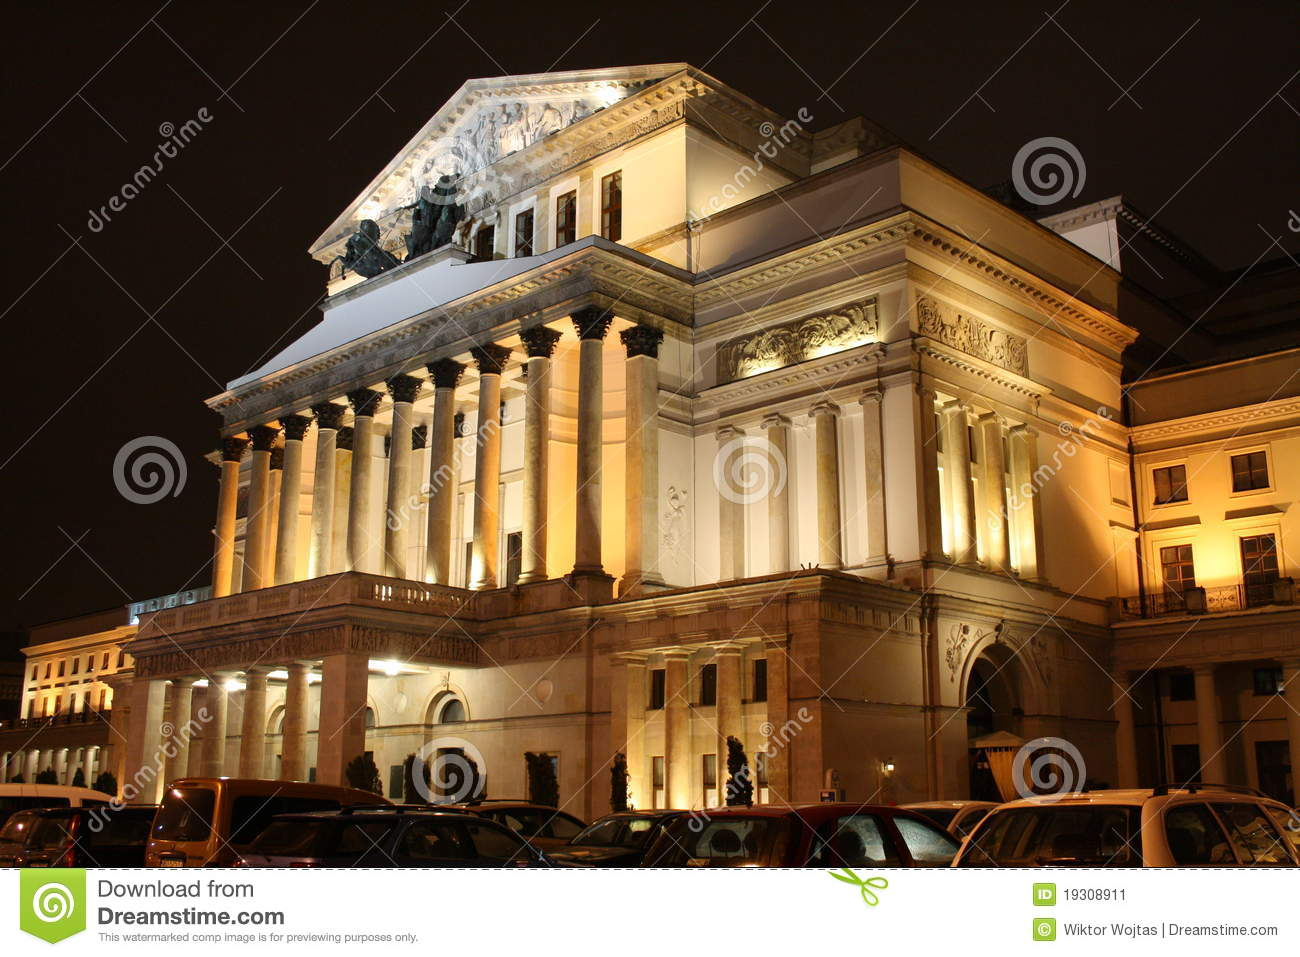 Grand Theatre in Warsaw (Poland) by night